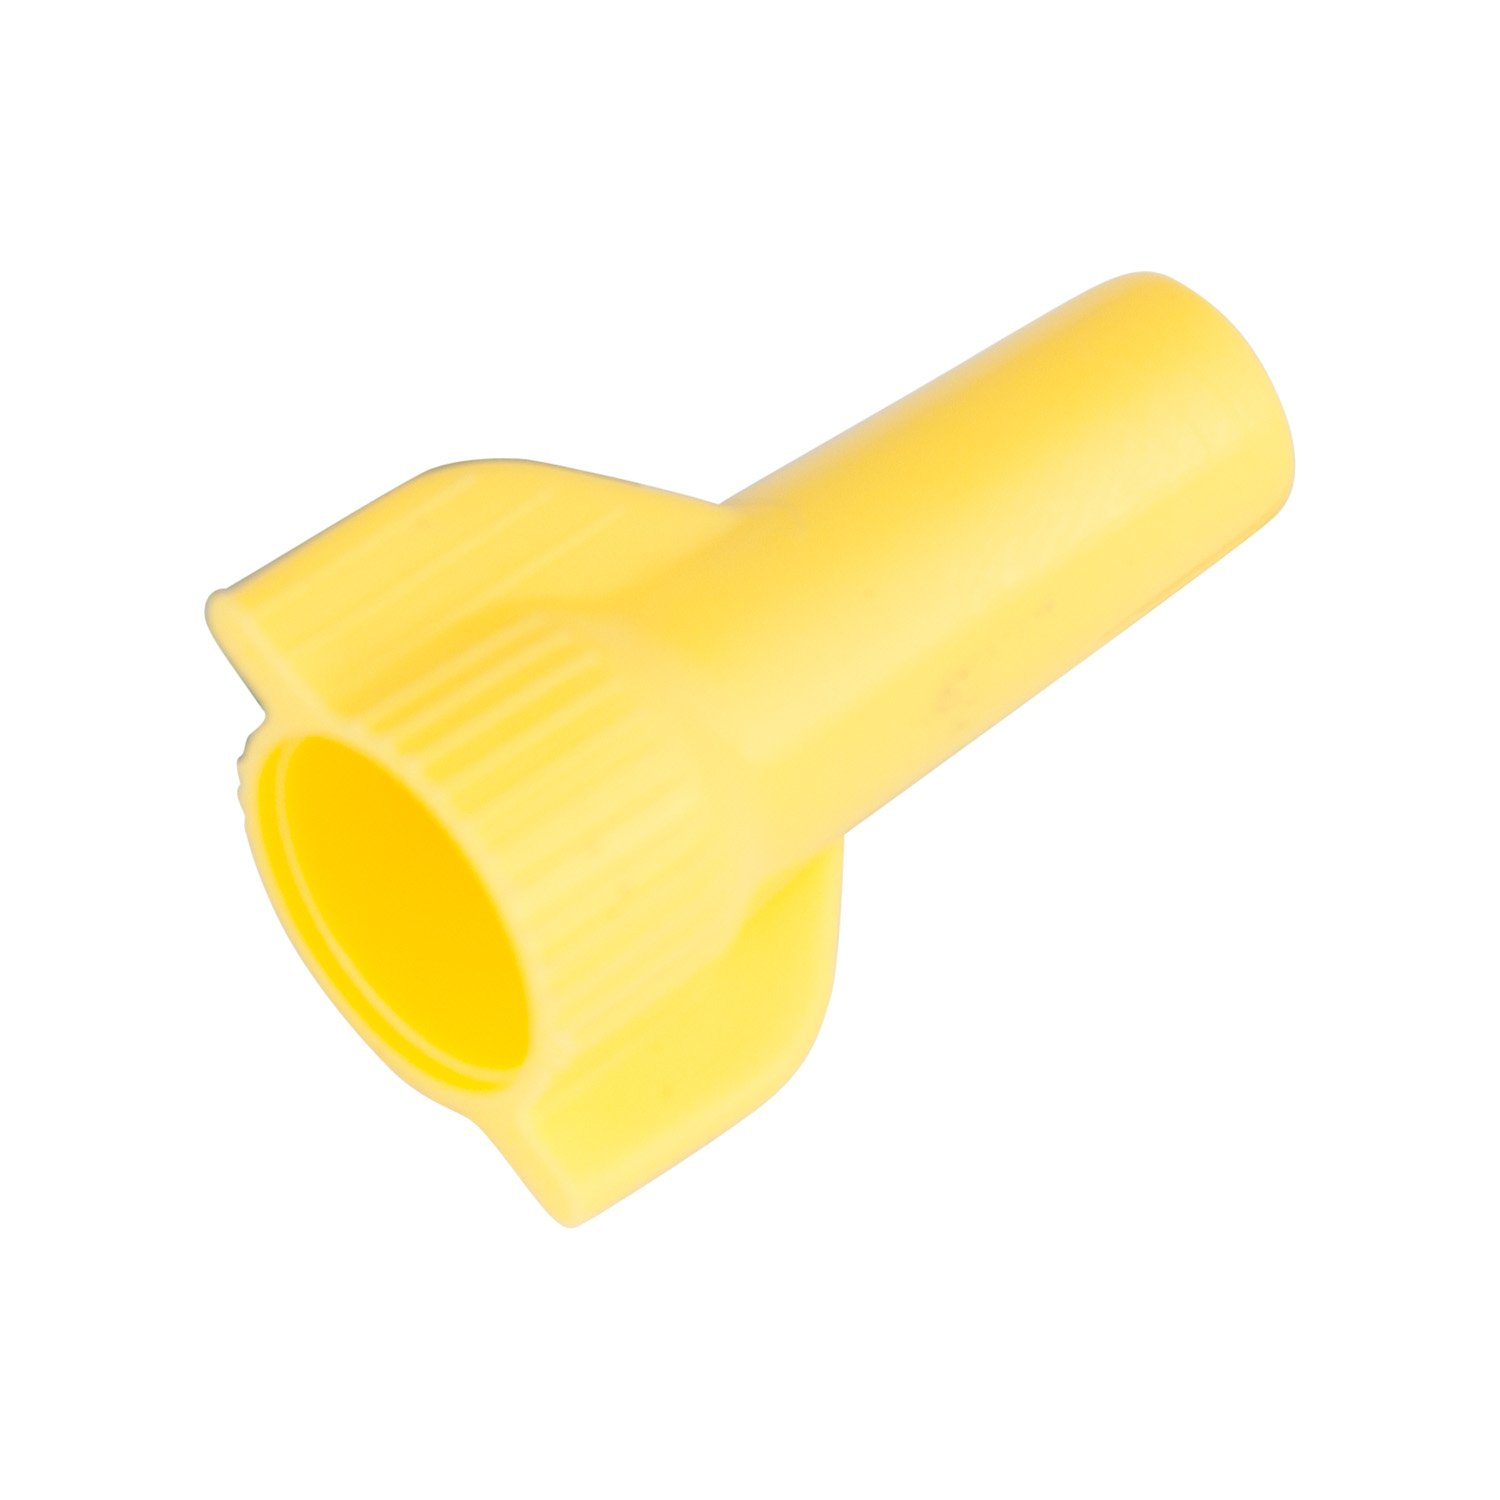 Gardner Bender 10-084 WingGard Twist-On Wire Connectors, 22-10 AWG, Electrical Wire Nut, 100 pk, Yellow